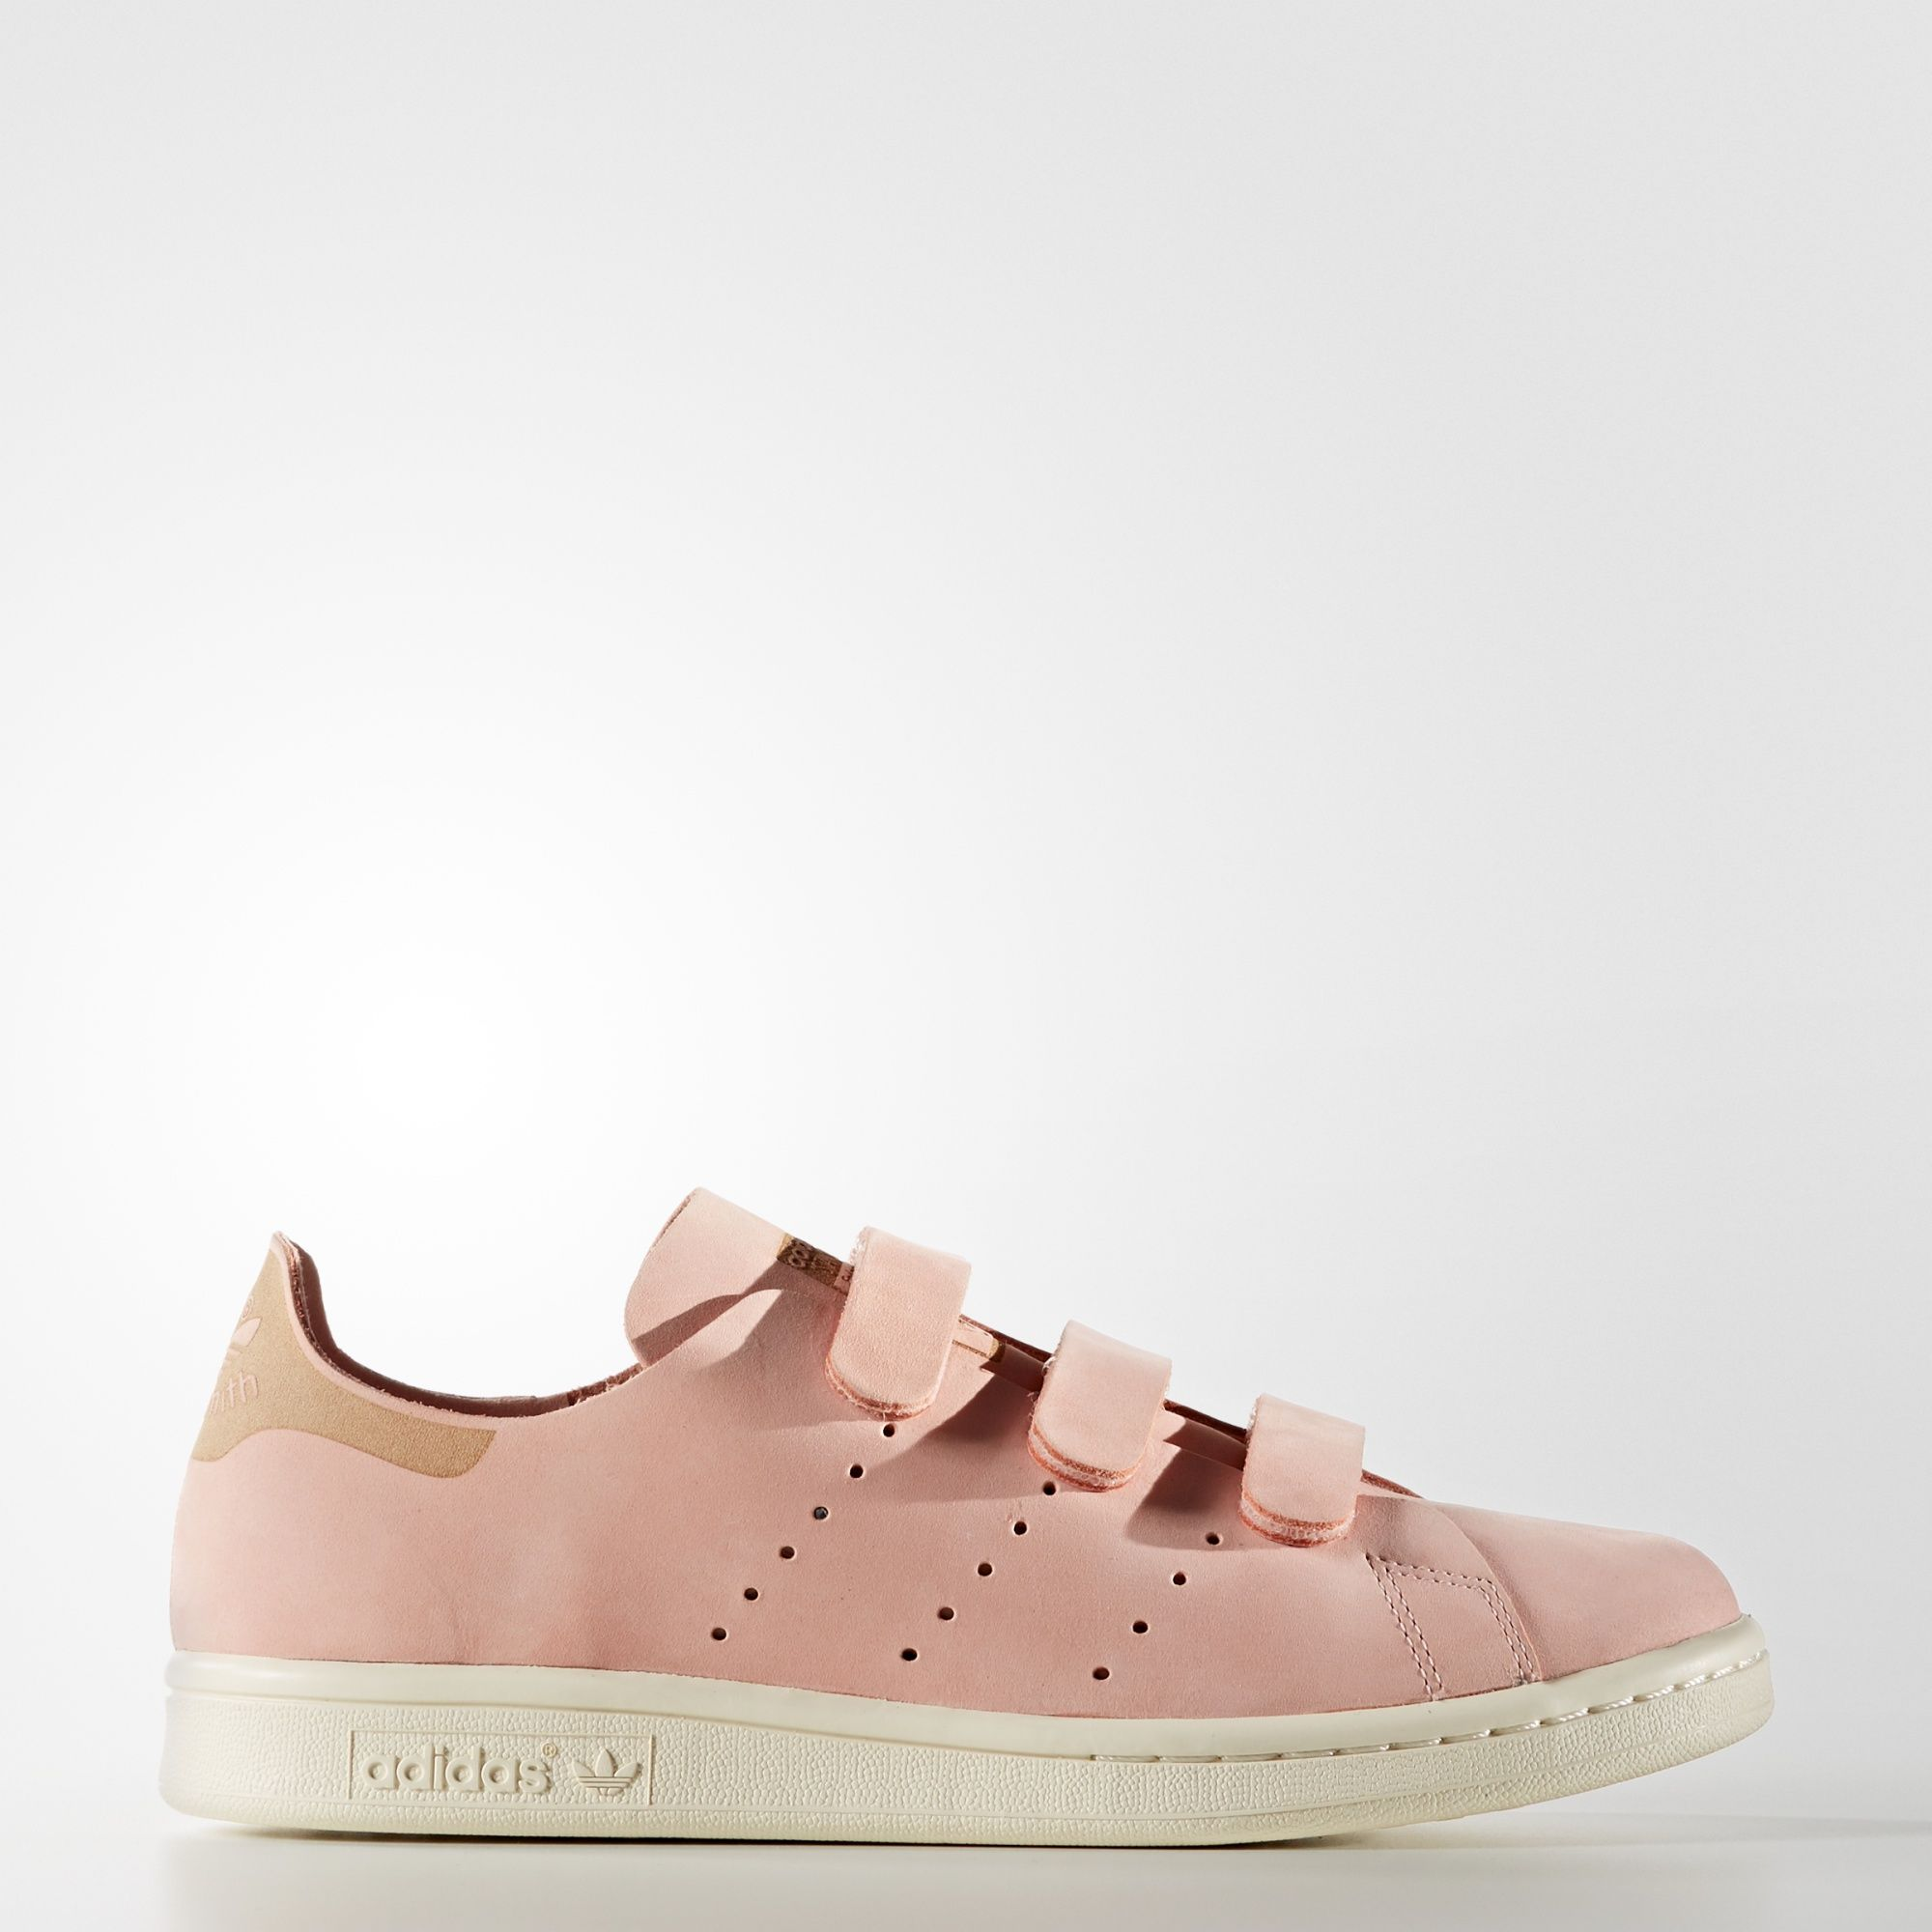 adidas chaussure femme rose stracth